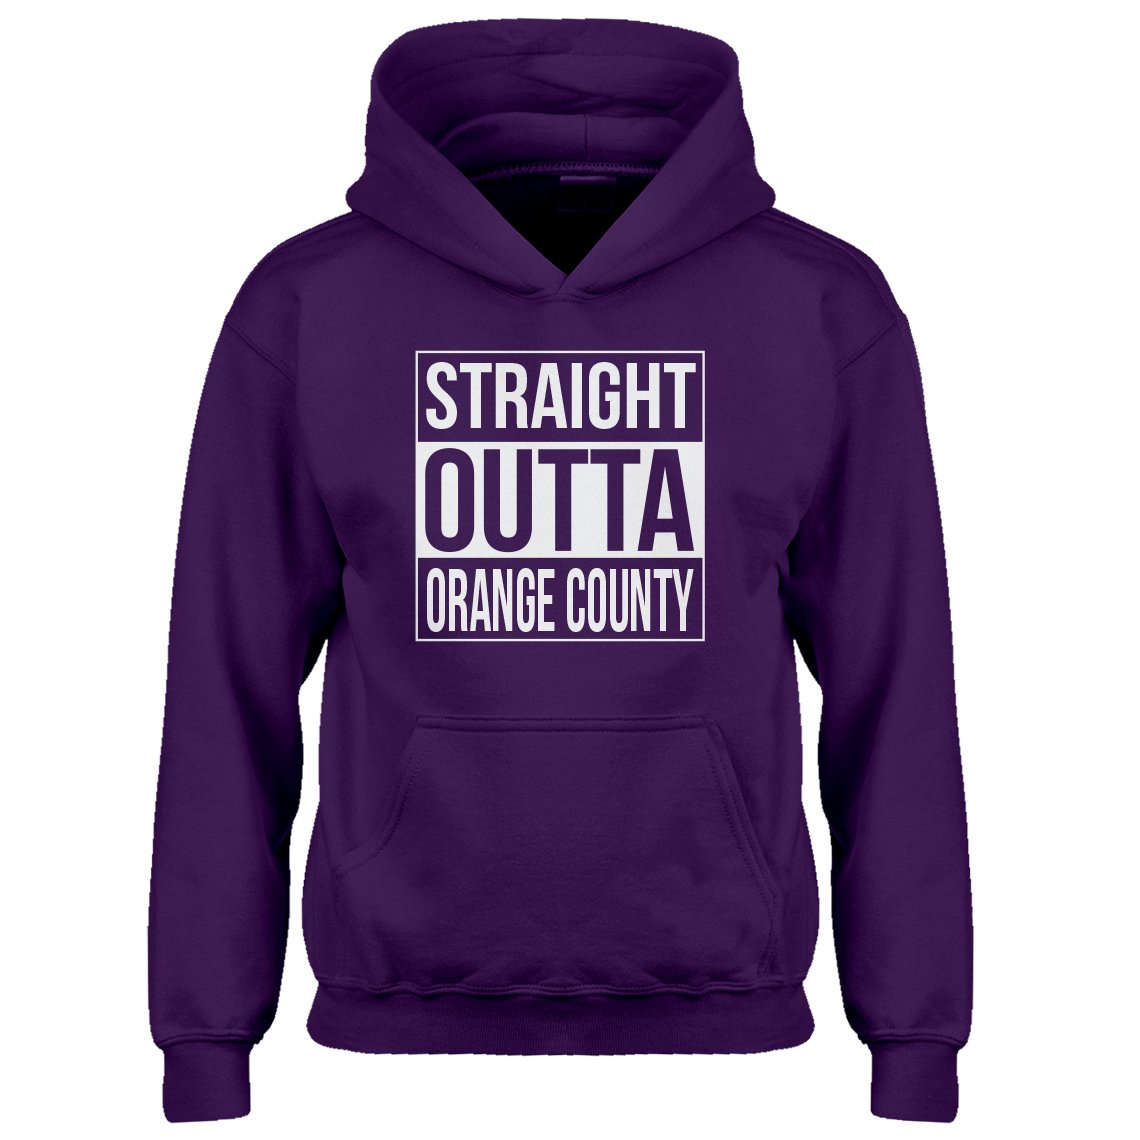 Indica Plateau Youth Straight Outta Orange County Kids Hoodie